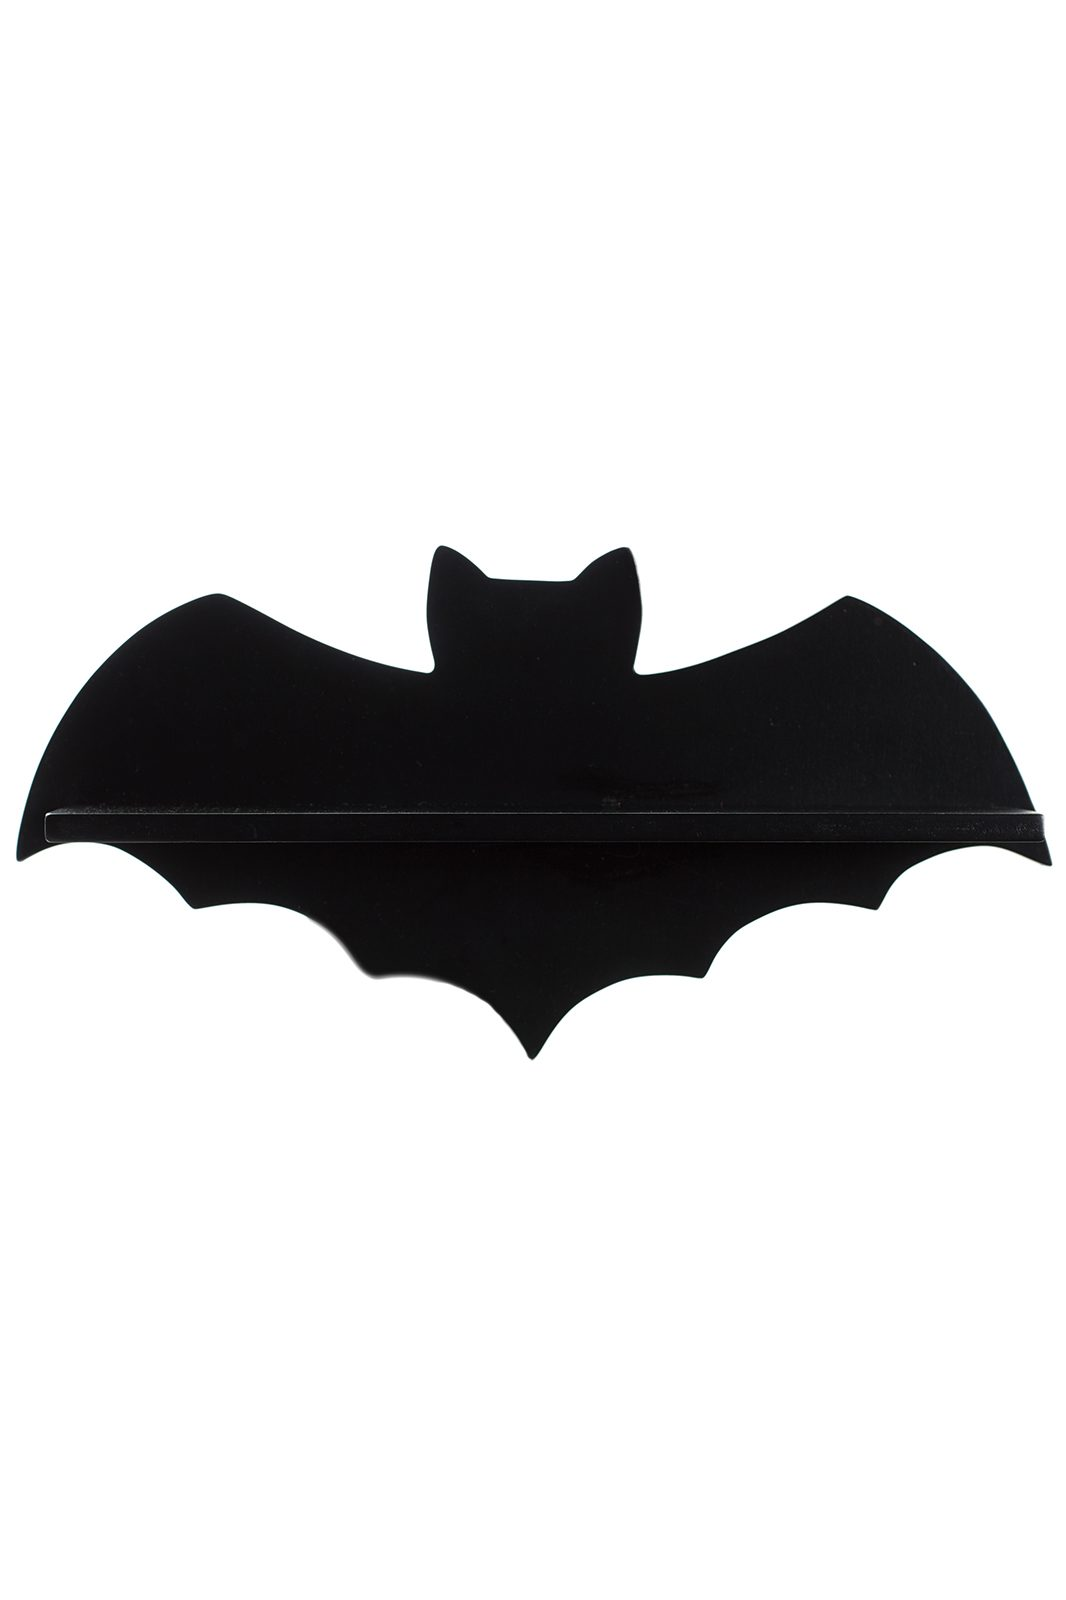 Bat Shelf Black